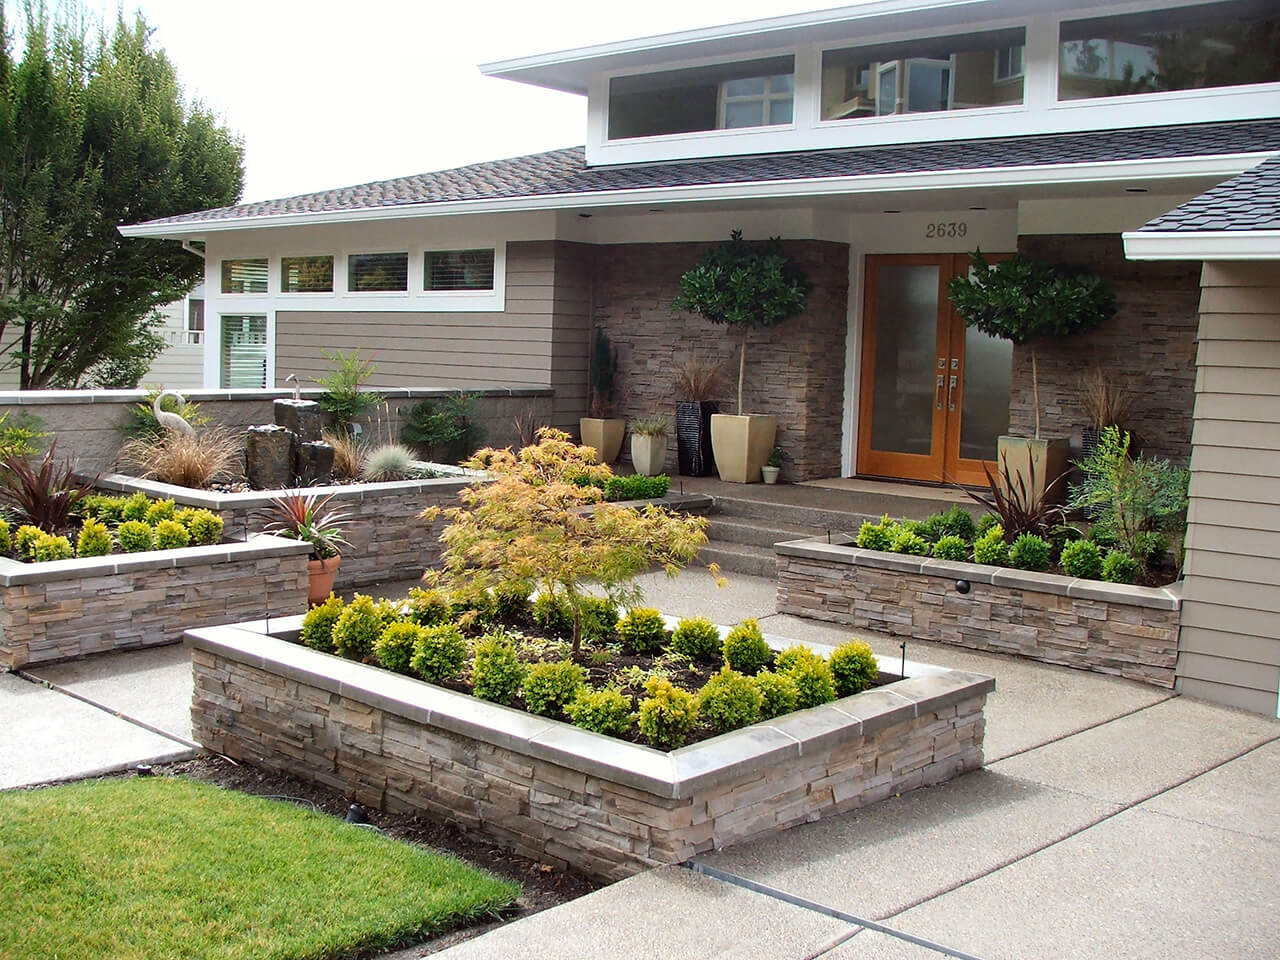 20 brilliant front garden landscaping ideas style motivation for Front lawn design